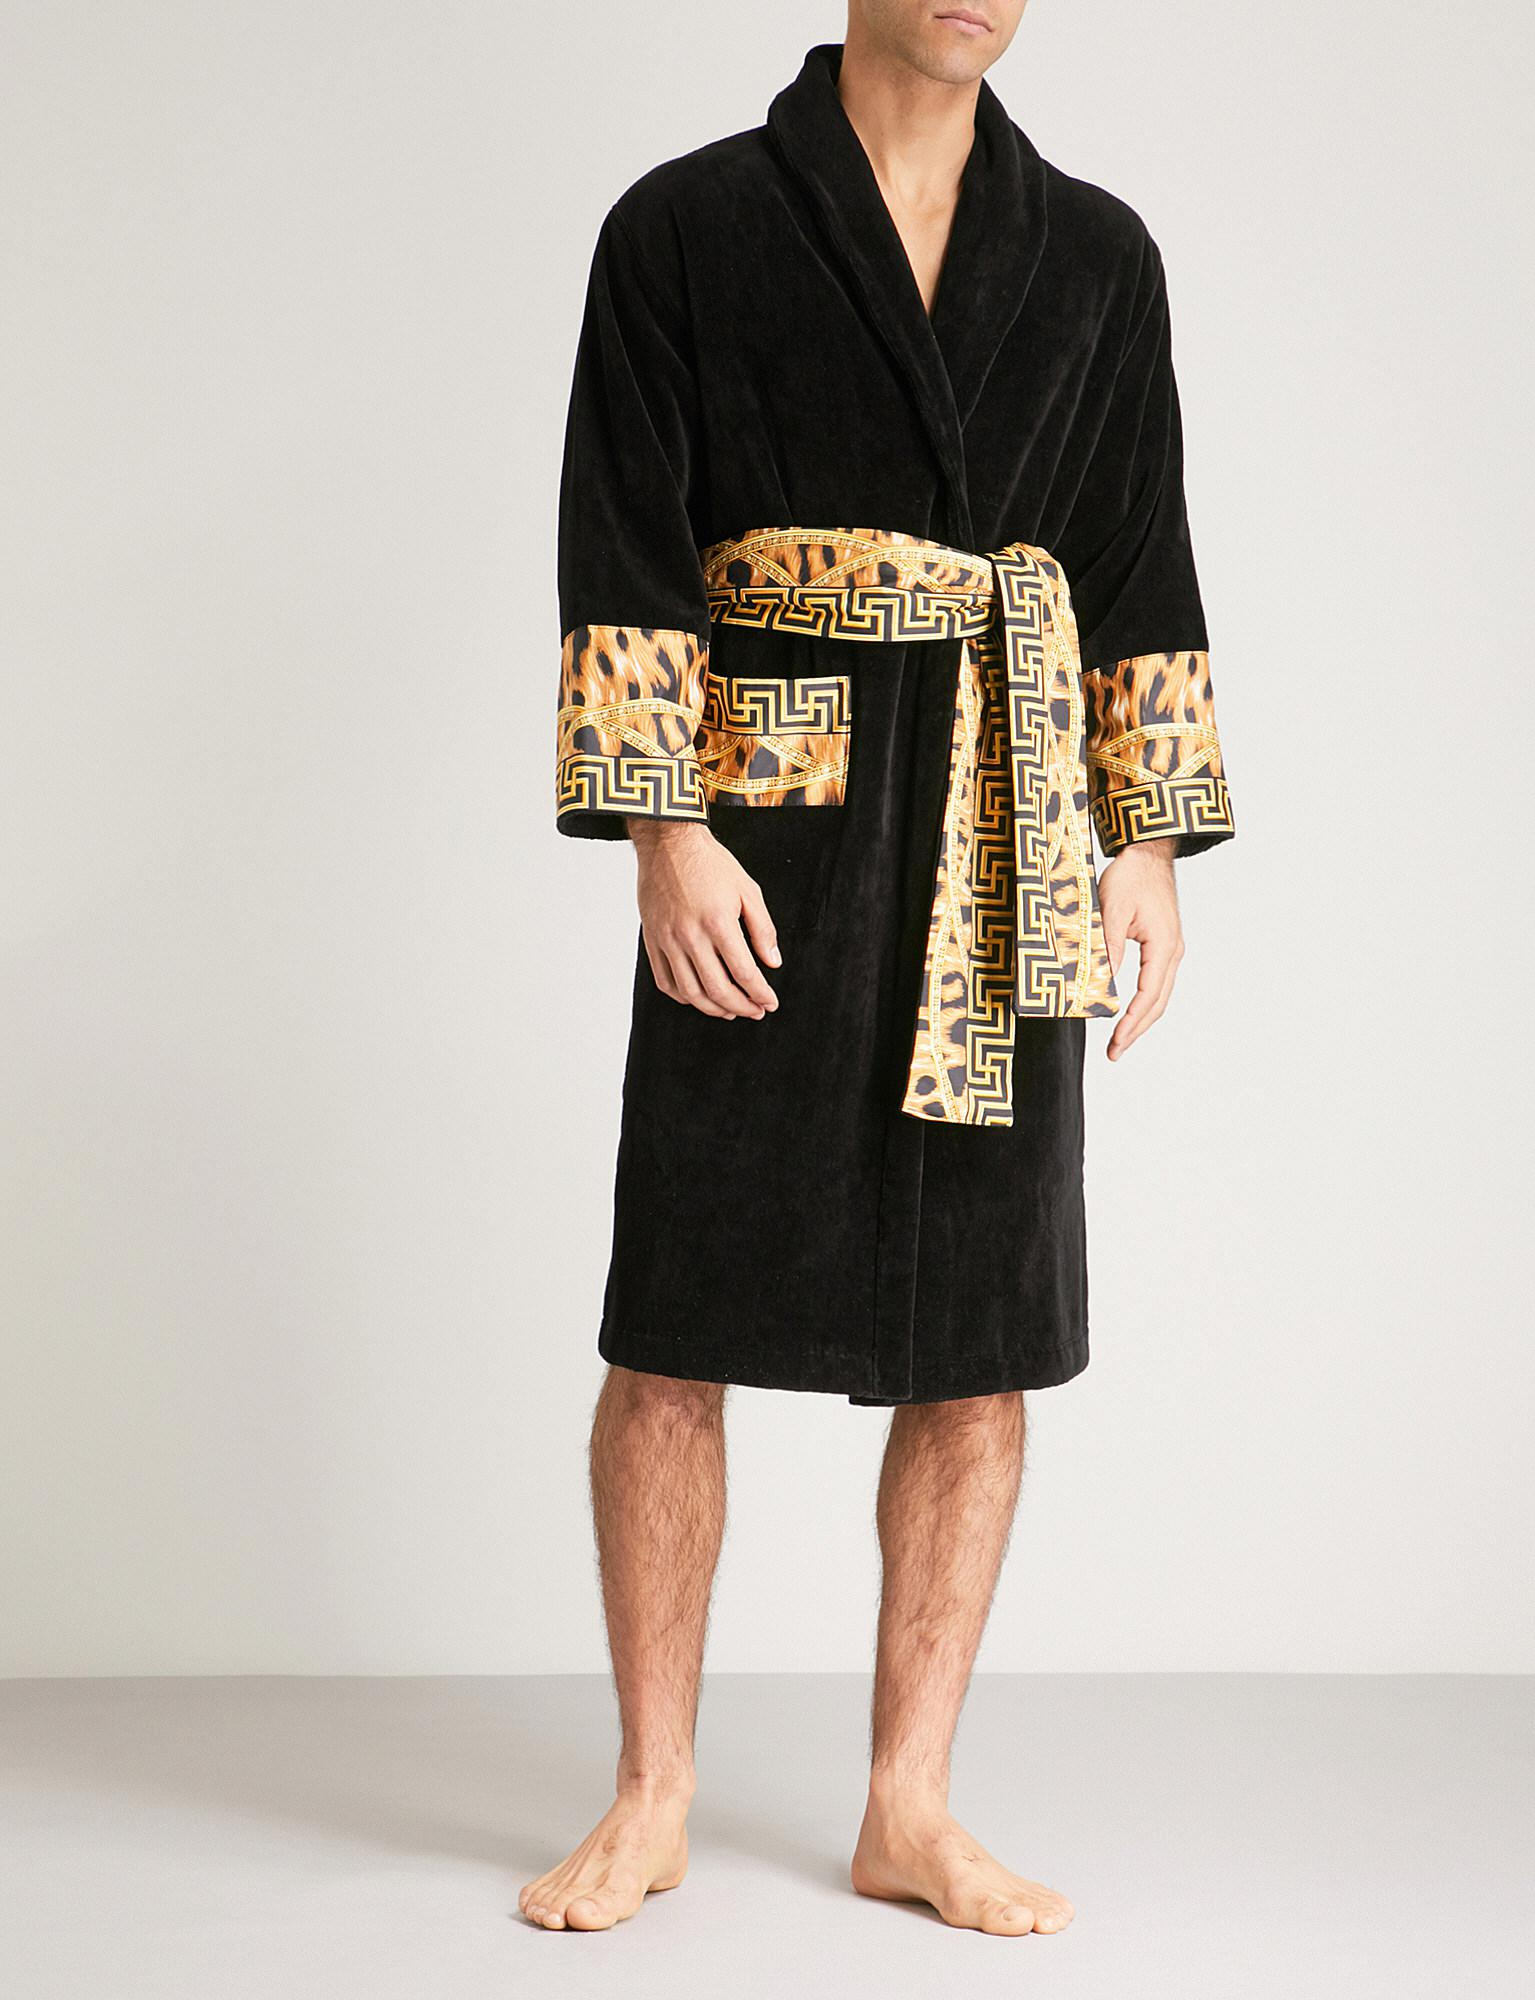 Lyst Versace Lamyland Printed Cotton Dressing Gown In Black For Men